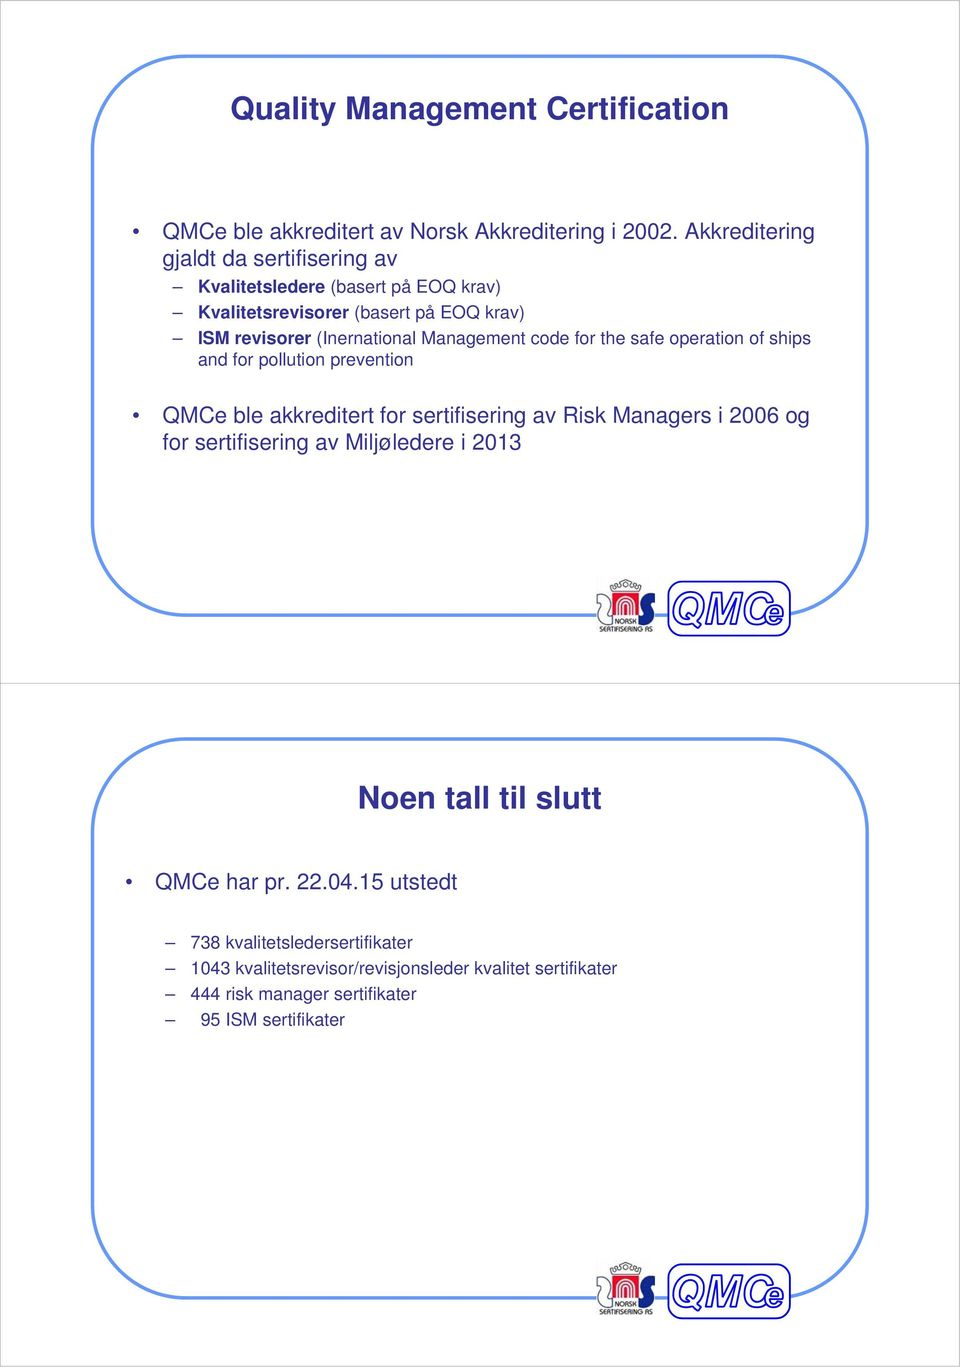 Management code for the safe operation of ships and for pollution prevention QMCe ble akkreditert for sertifisering av Risk Managers i 2006 og for